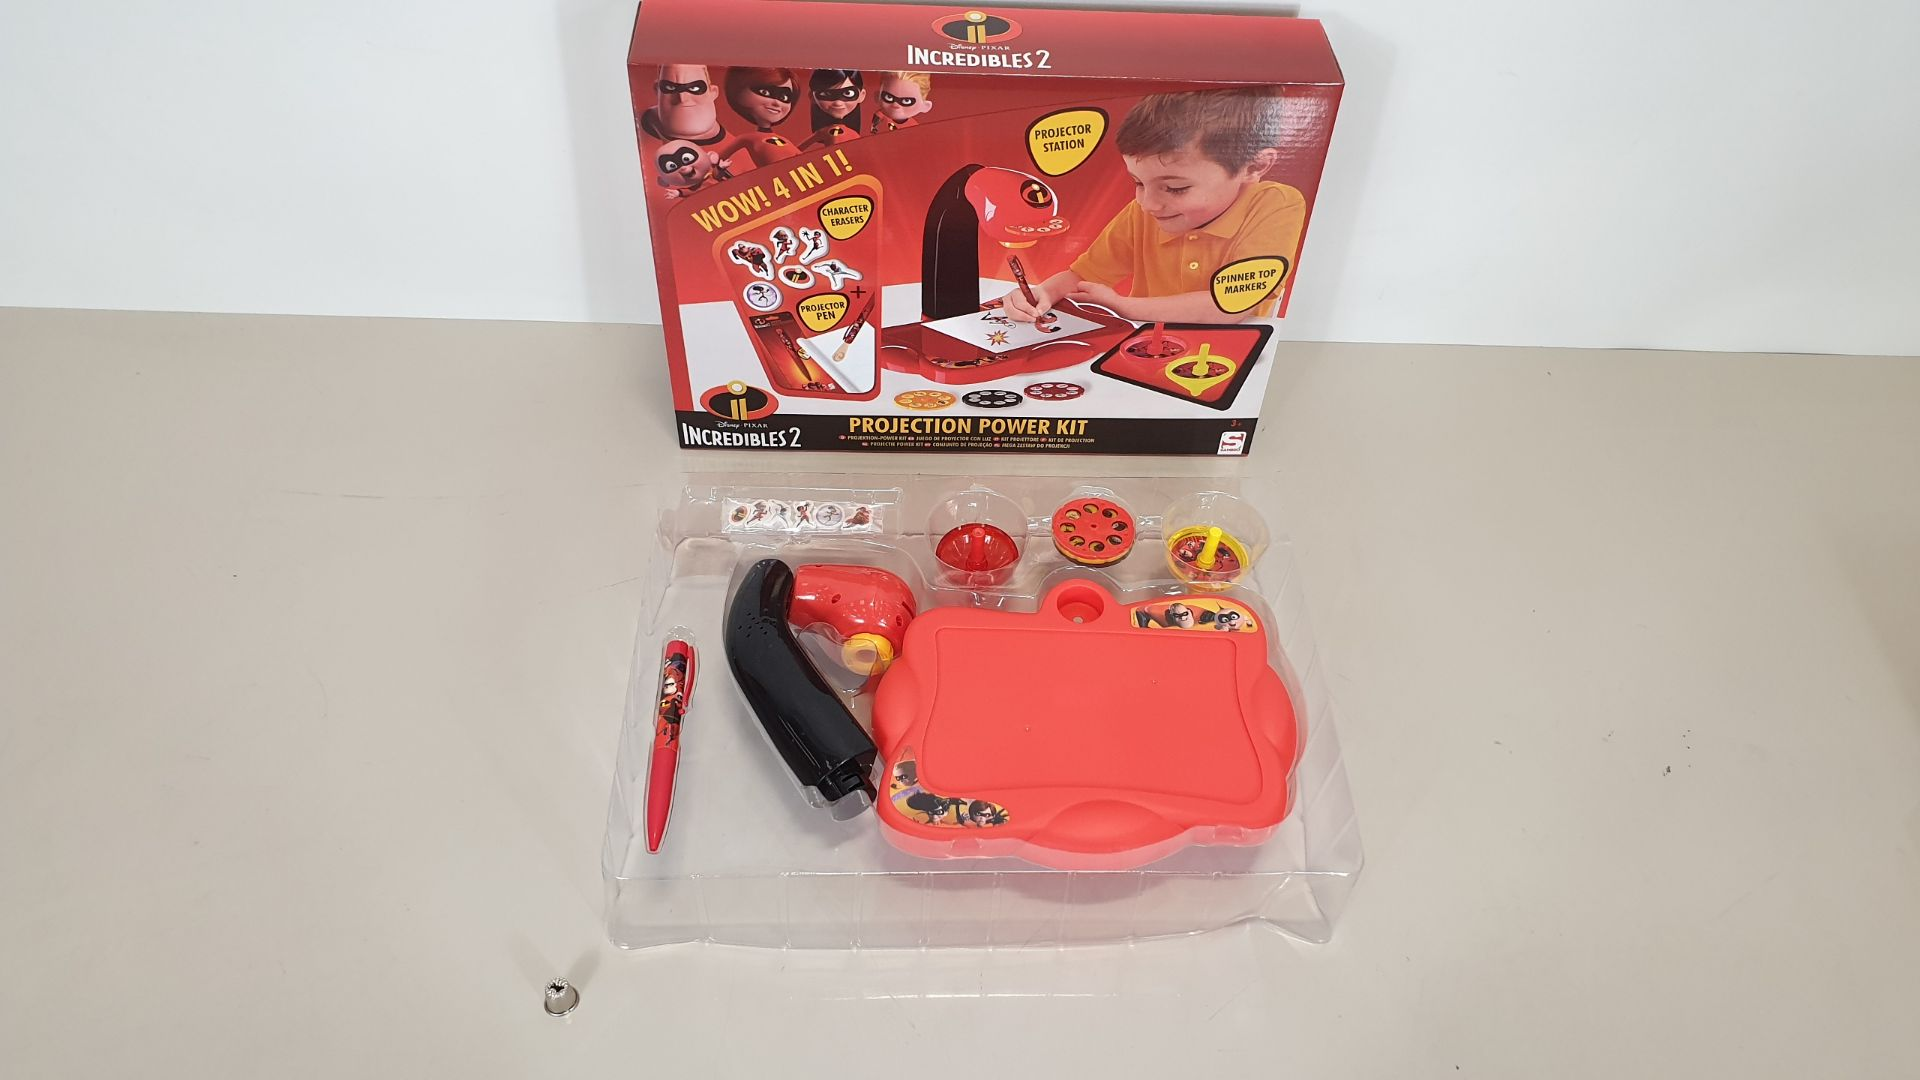 Lot 37 - 60 X BRAND NEW DISNEY PIXAR INCREDIBLES 2 WOW 4 IN 1 PROJECTION POWER KIT, INCLUDES PROJECTION